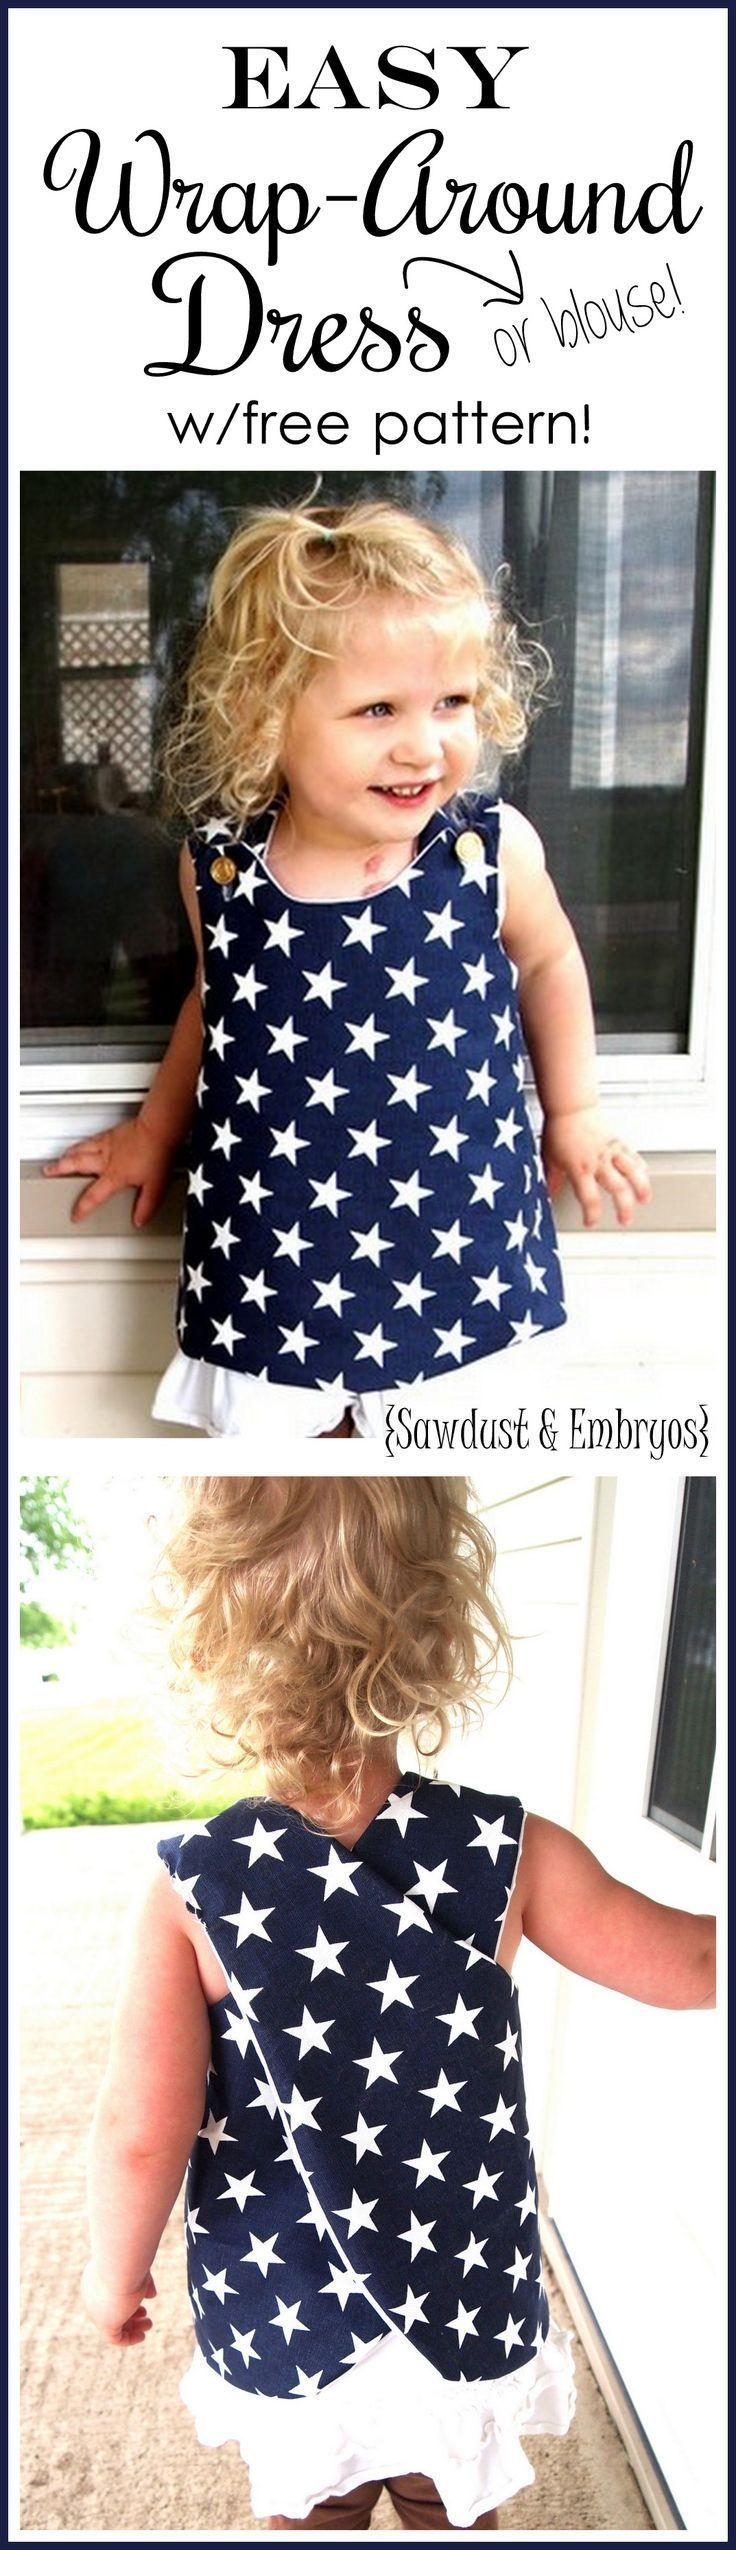 Suuuper simple wrap-around dress tutorial... so cute for toddlers! includes FREE PATTERN {Reality Daydream}